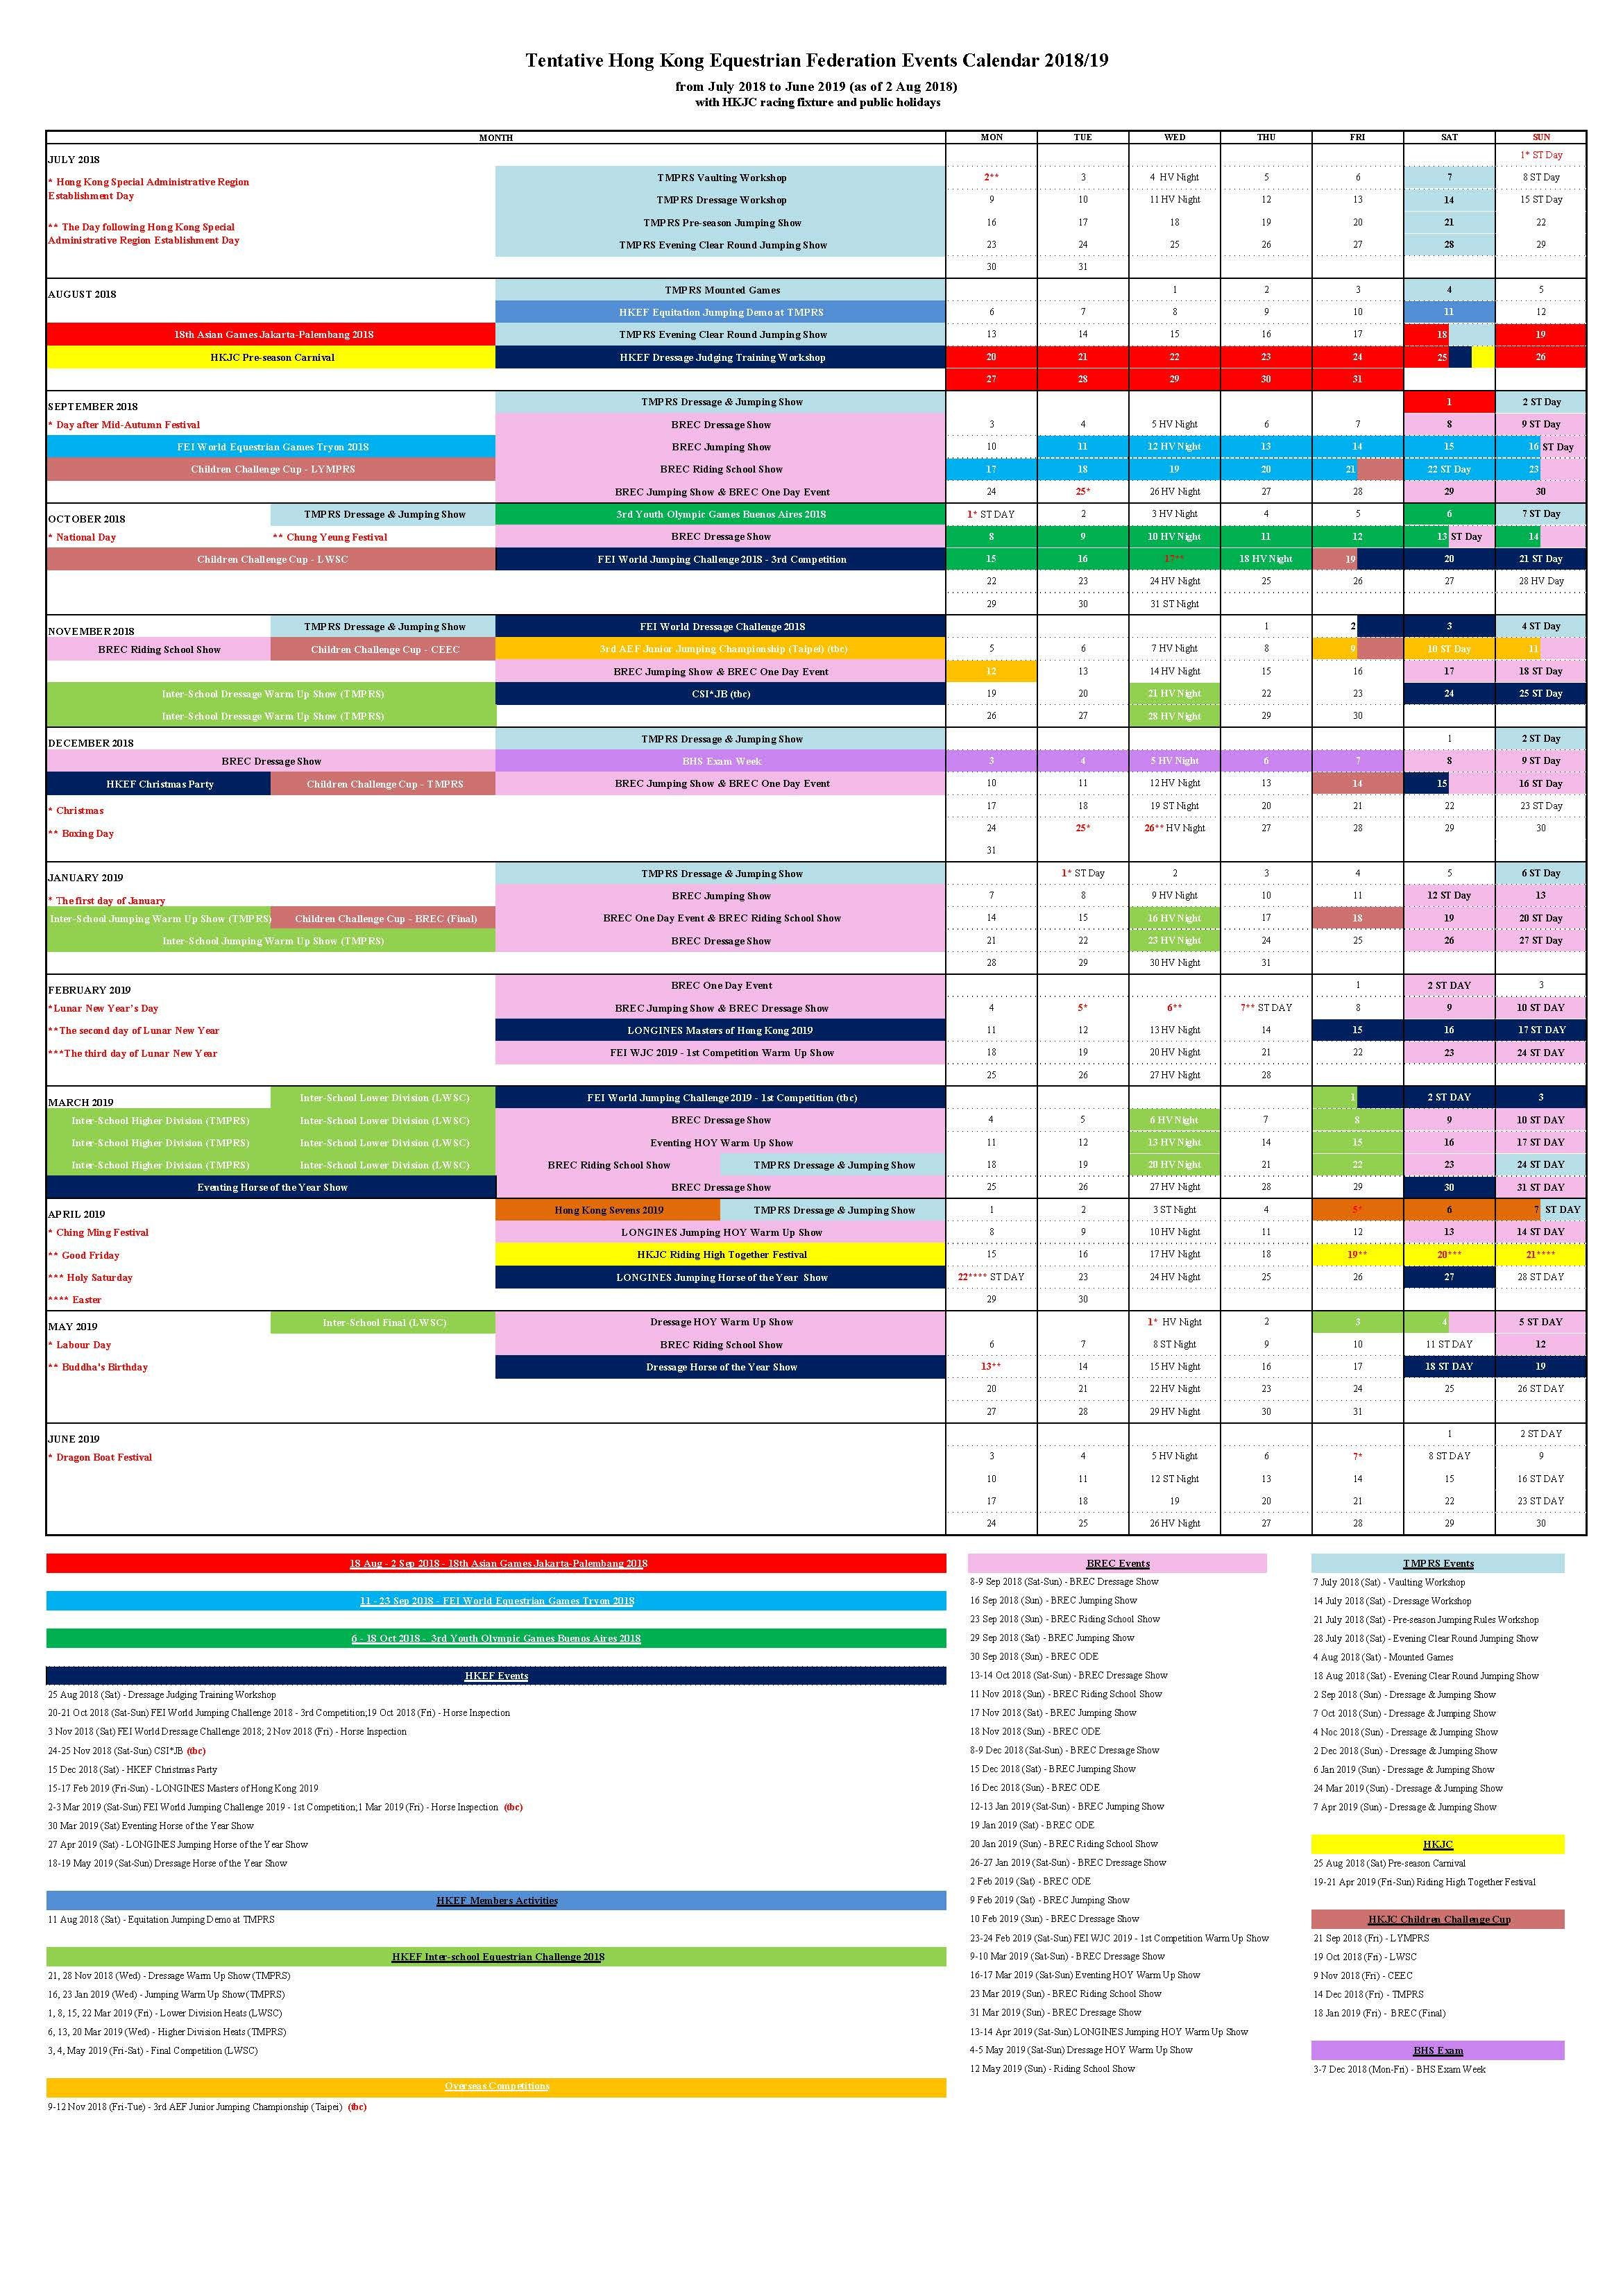 Tentative Hkef Events Calendar 2018 – 2019 As Of 2 Aug 2018 | Hong Calendar 2019 Of Events